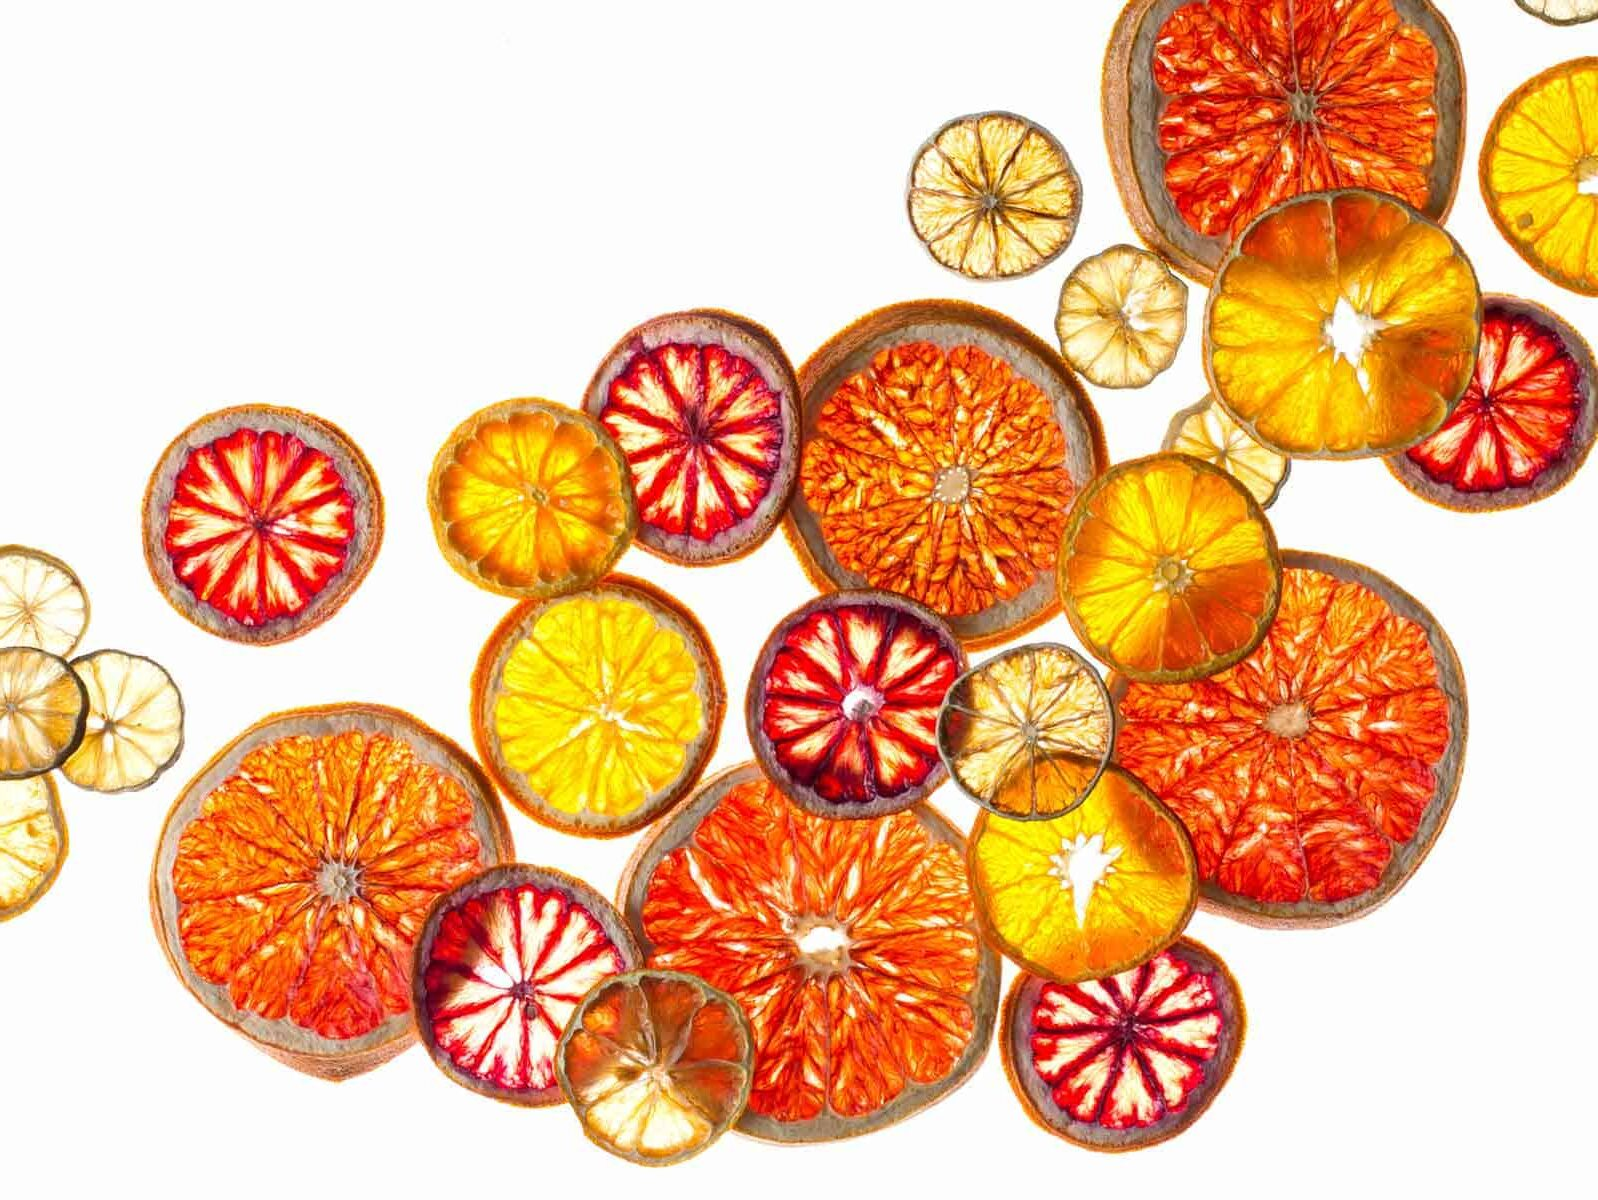 A variety of dehydrated citrus wheels.